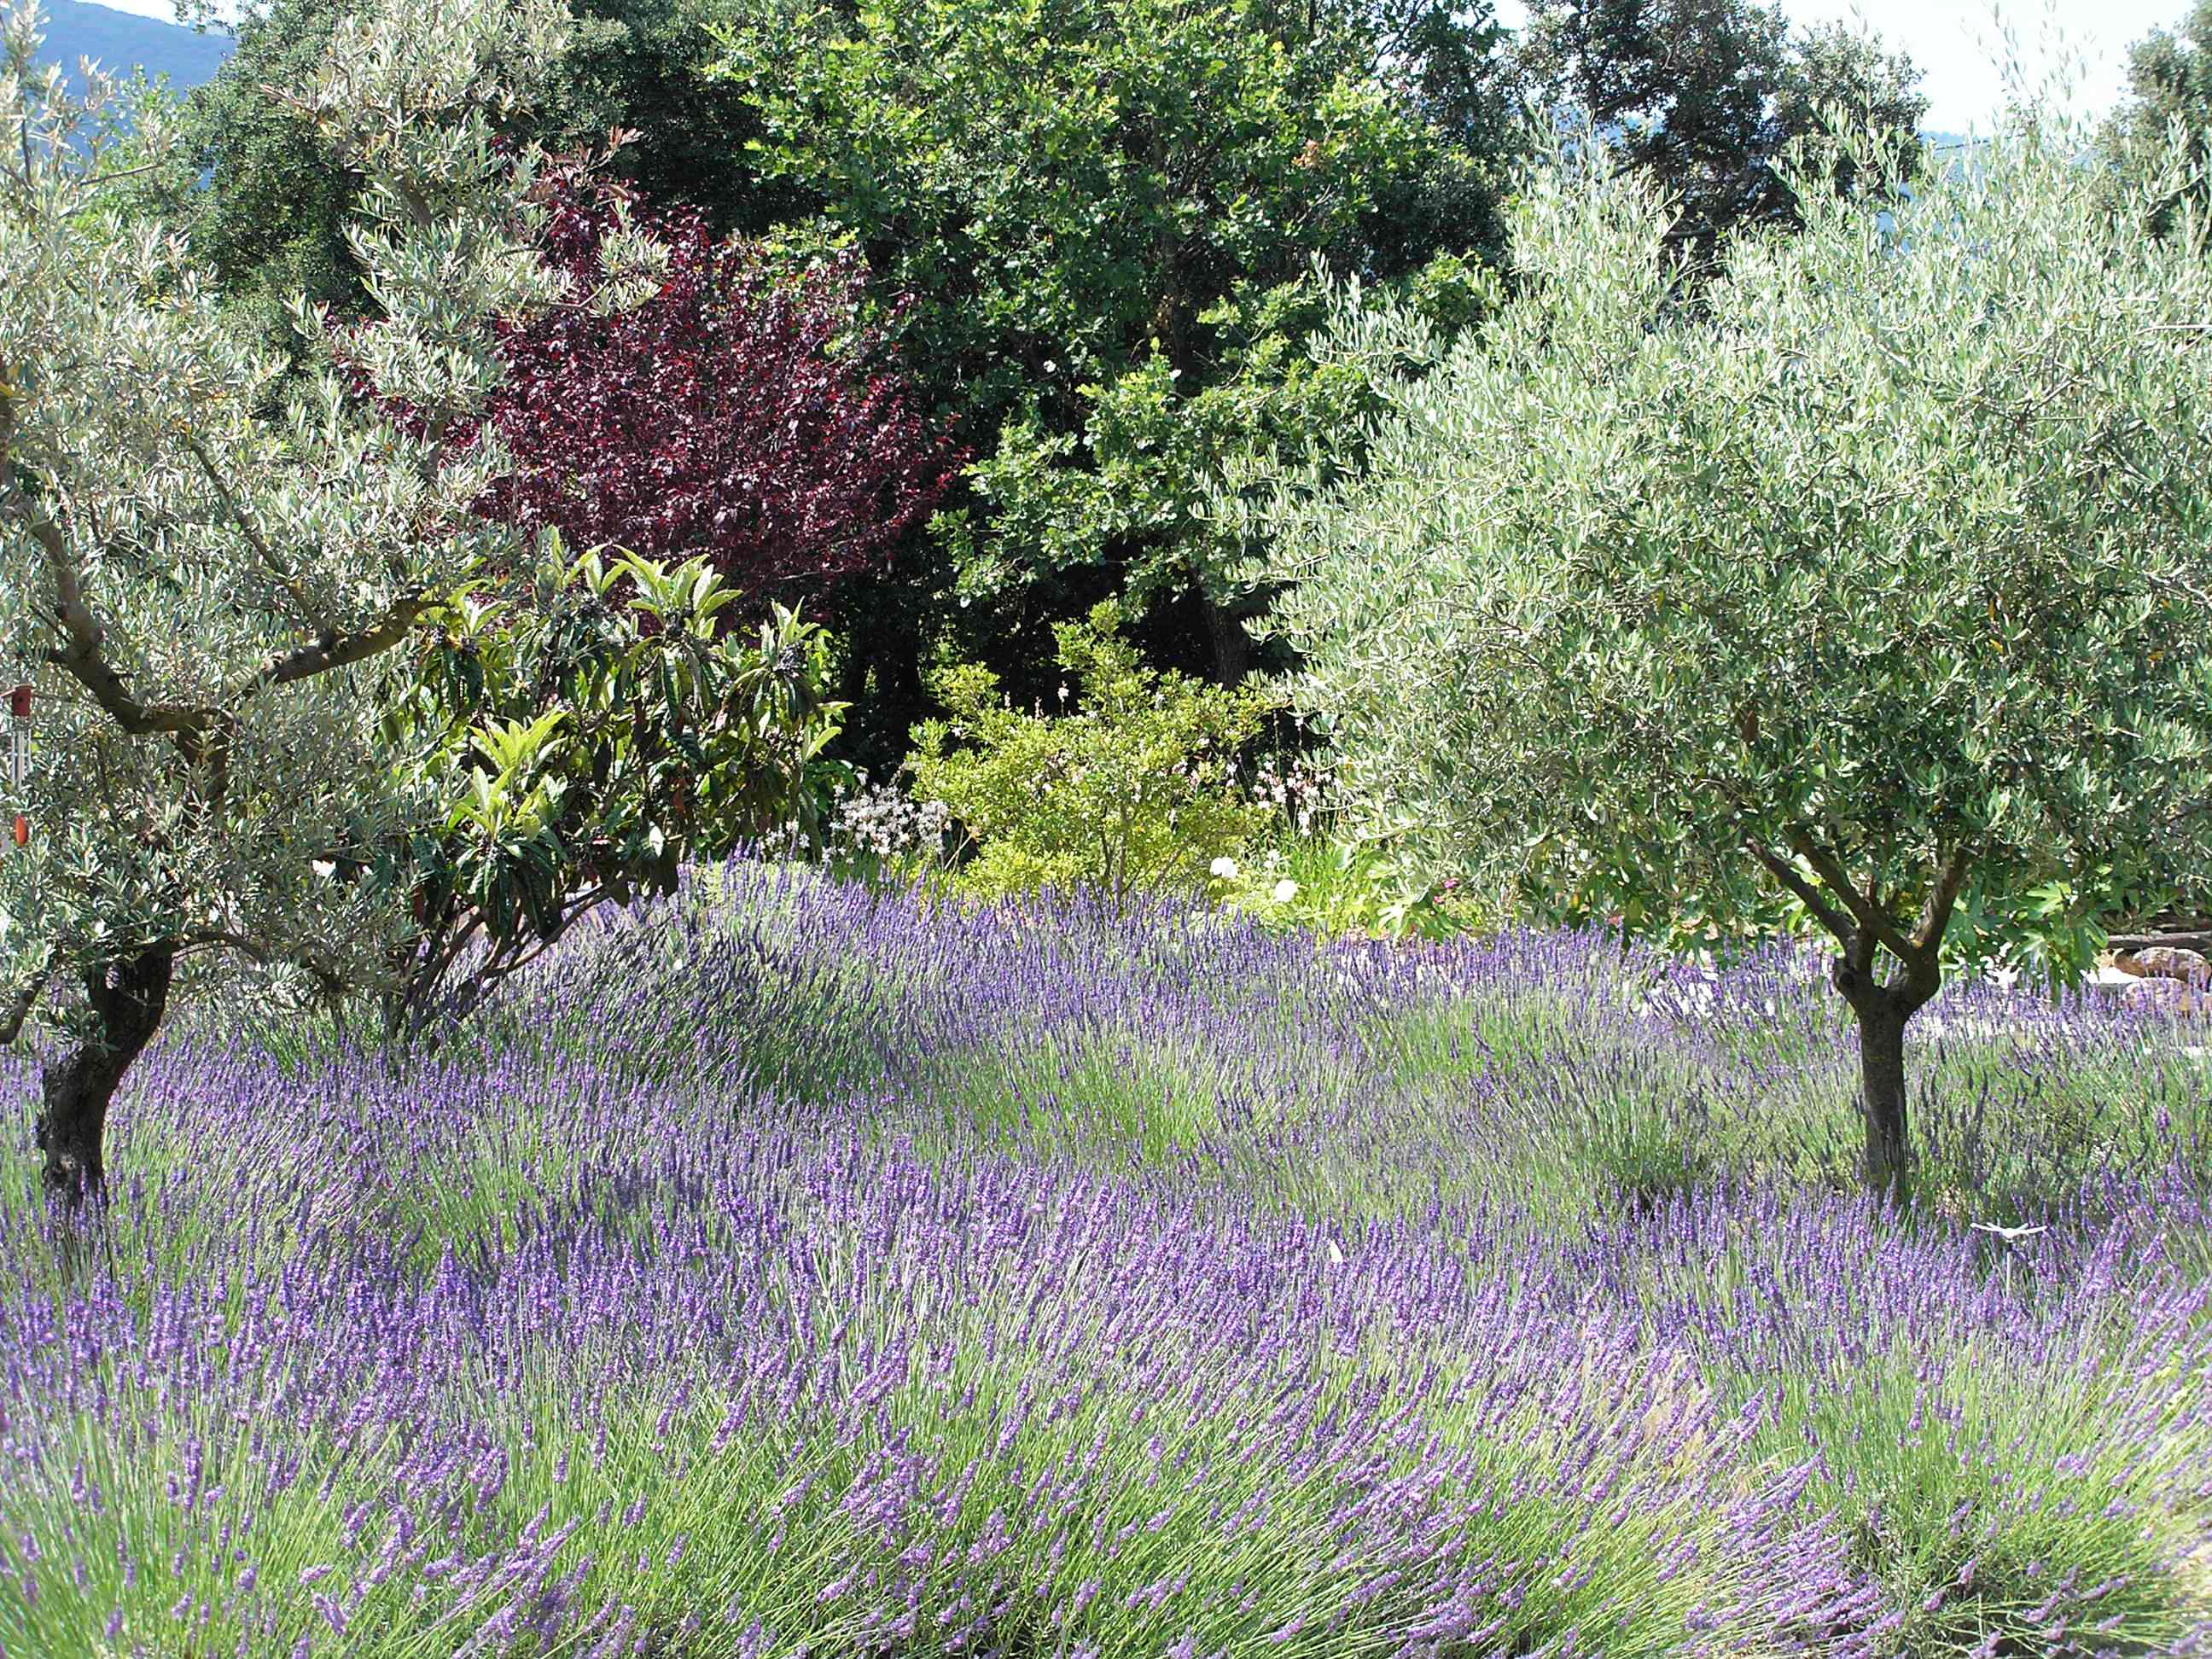 The garden is a place of relaxation and serenity with lavender